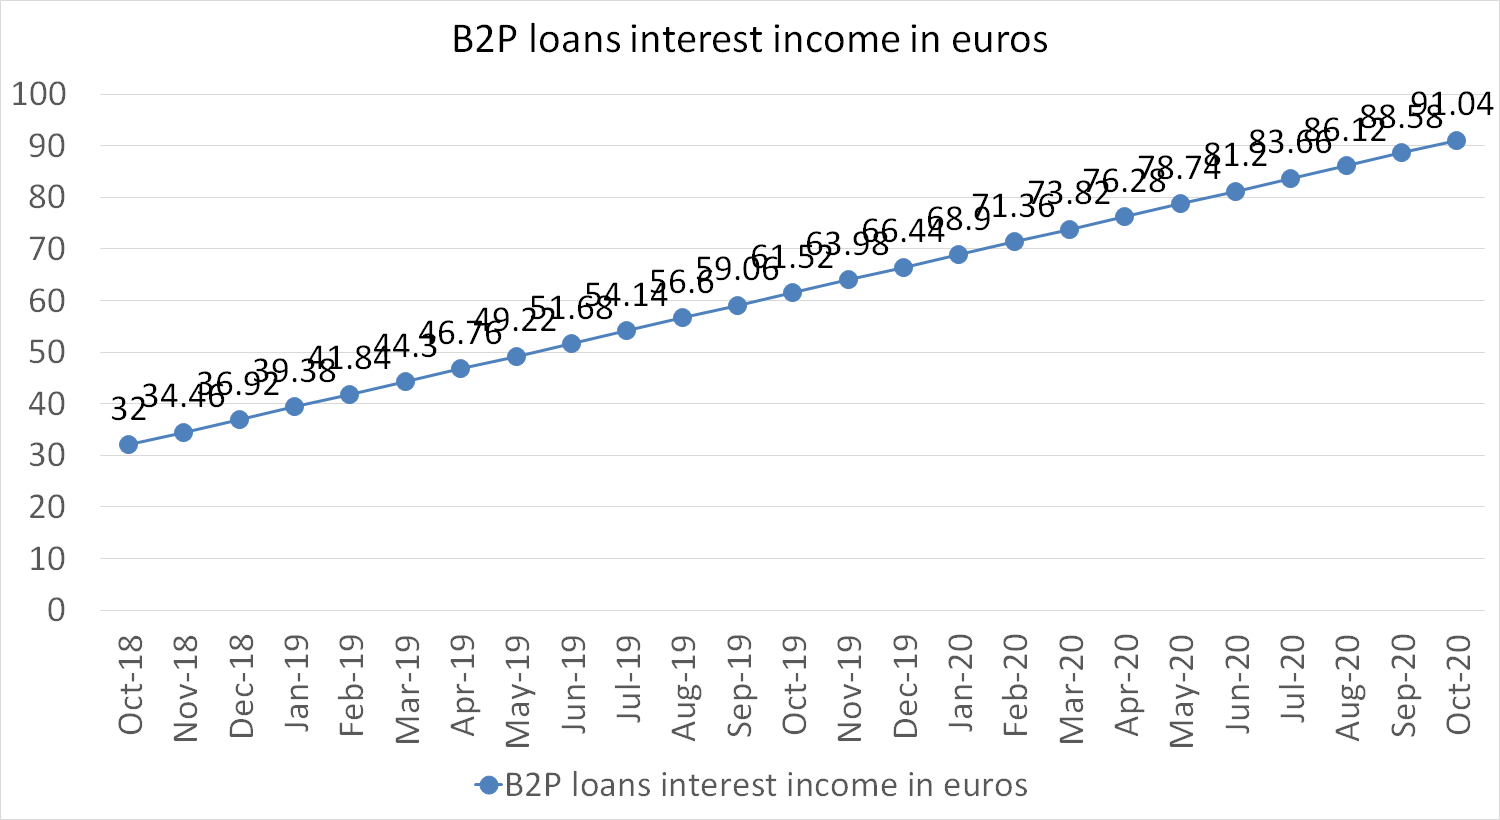 B2P loans interest income in euros october 2020